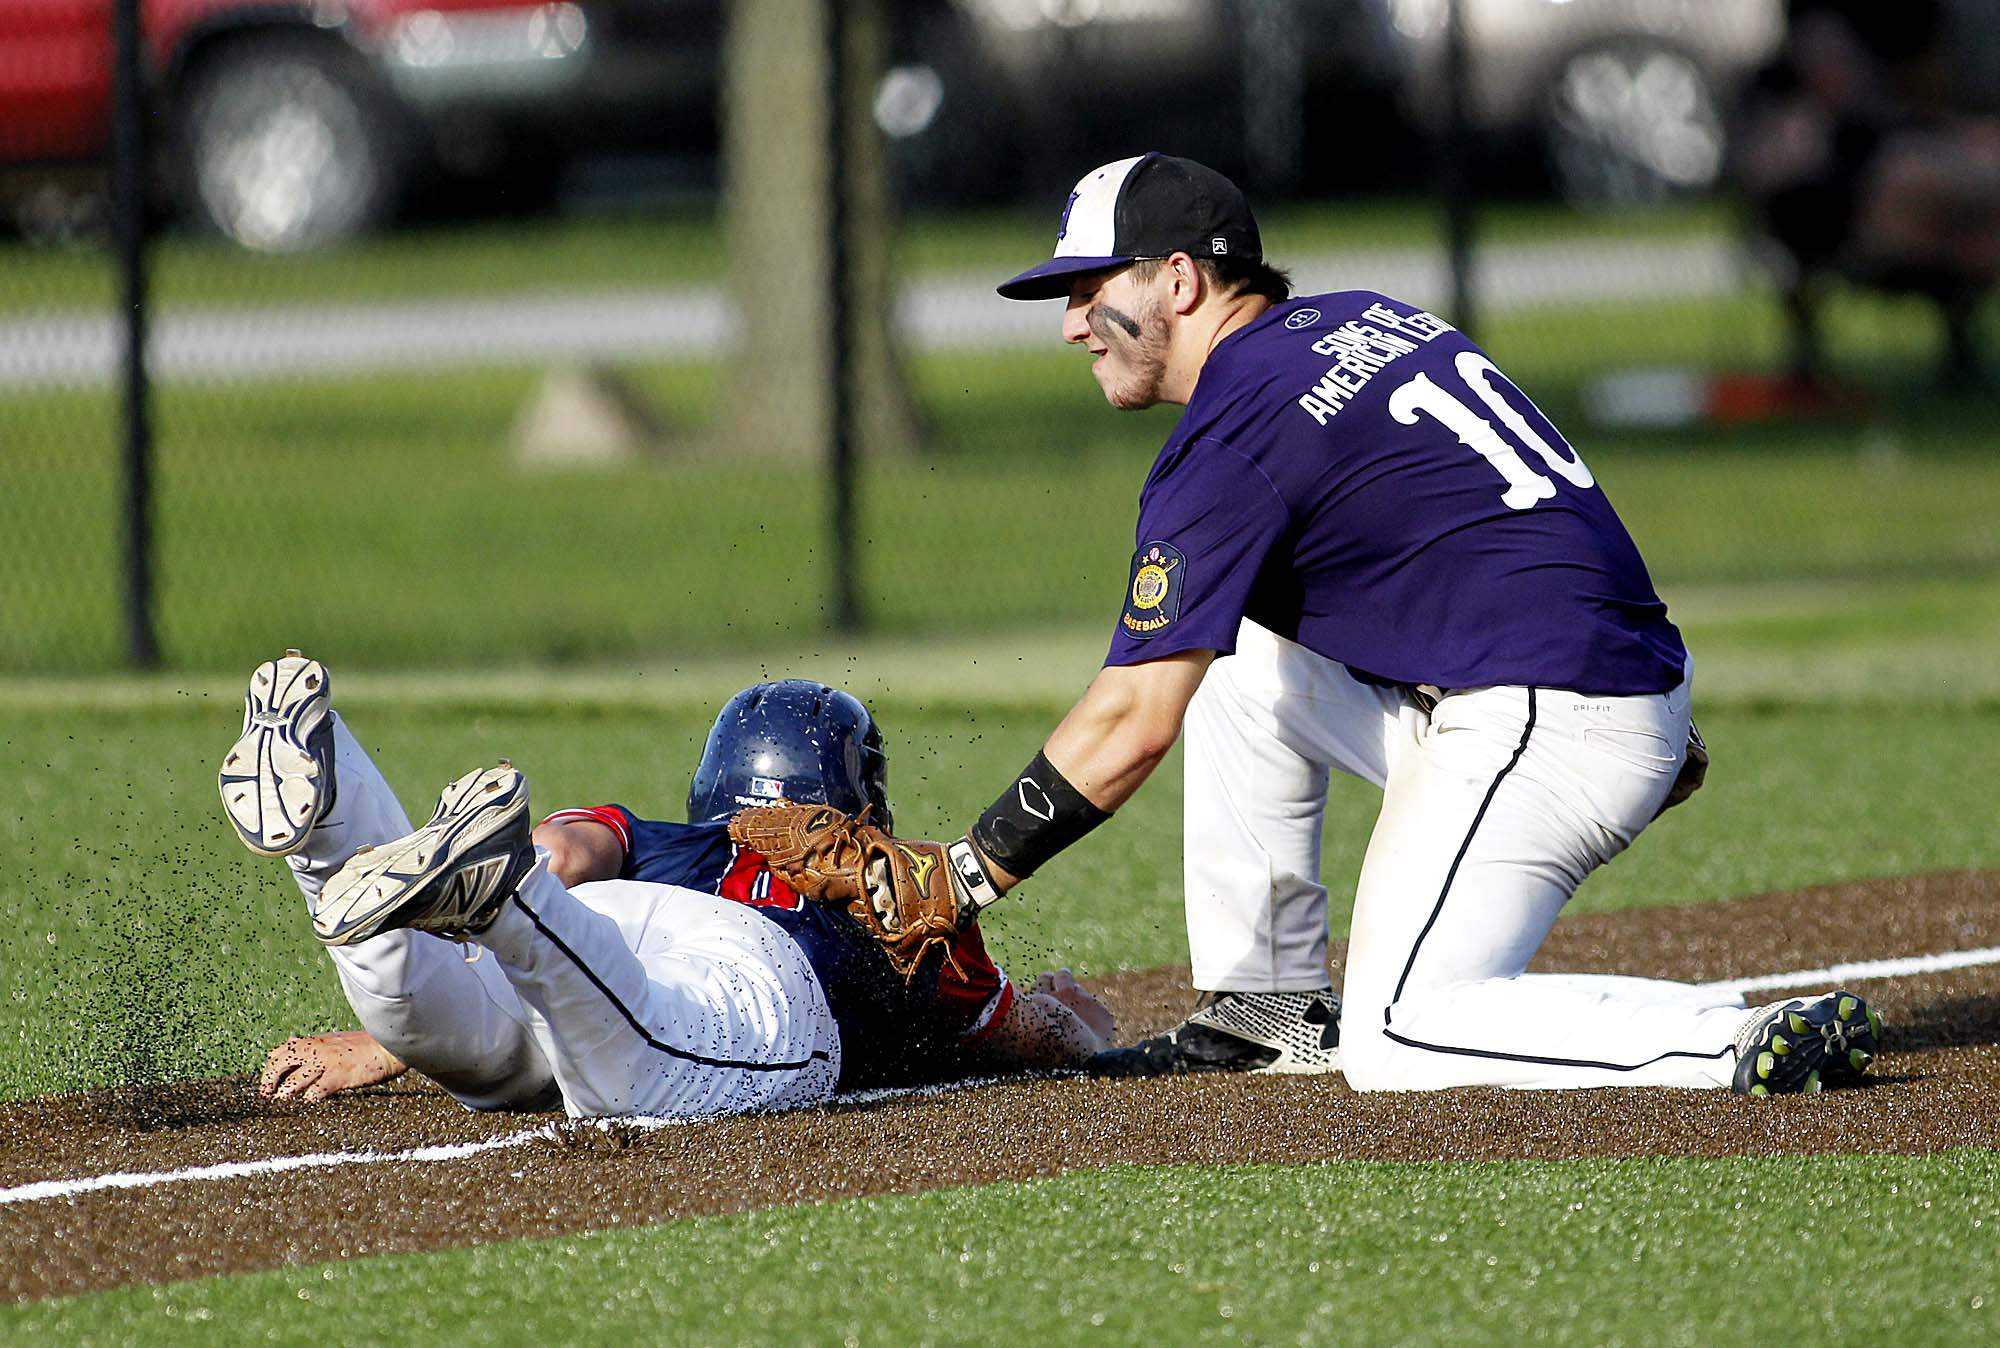 Harrisburg American Legion Post 167 third baseman Bayden Ditterline applies this tag to put out Marion Post 147 pinch runner Jake Griffin in action Friday night at Jay Thompson Field in Harrisburg.